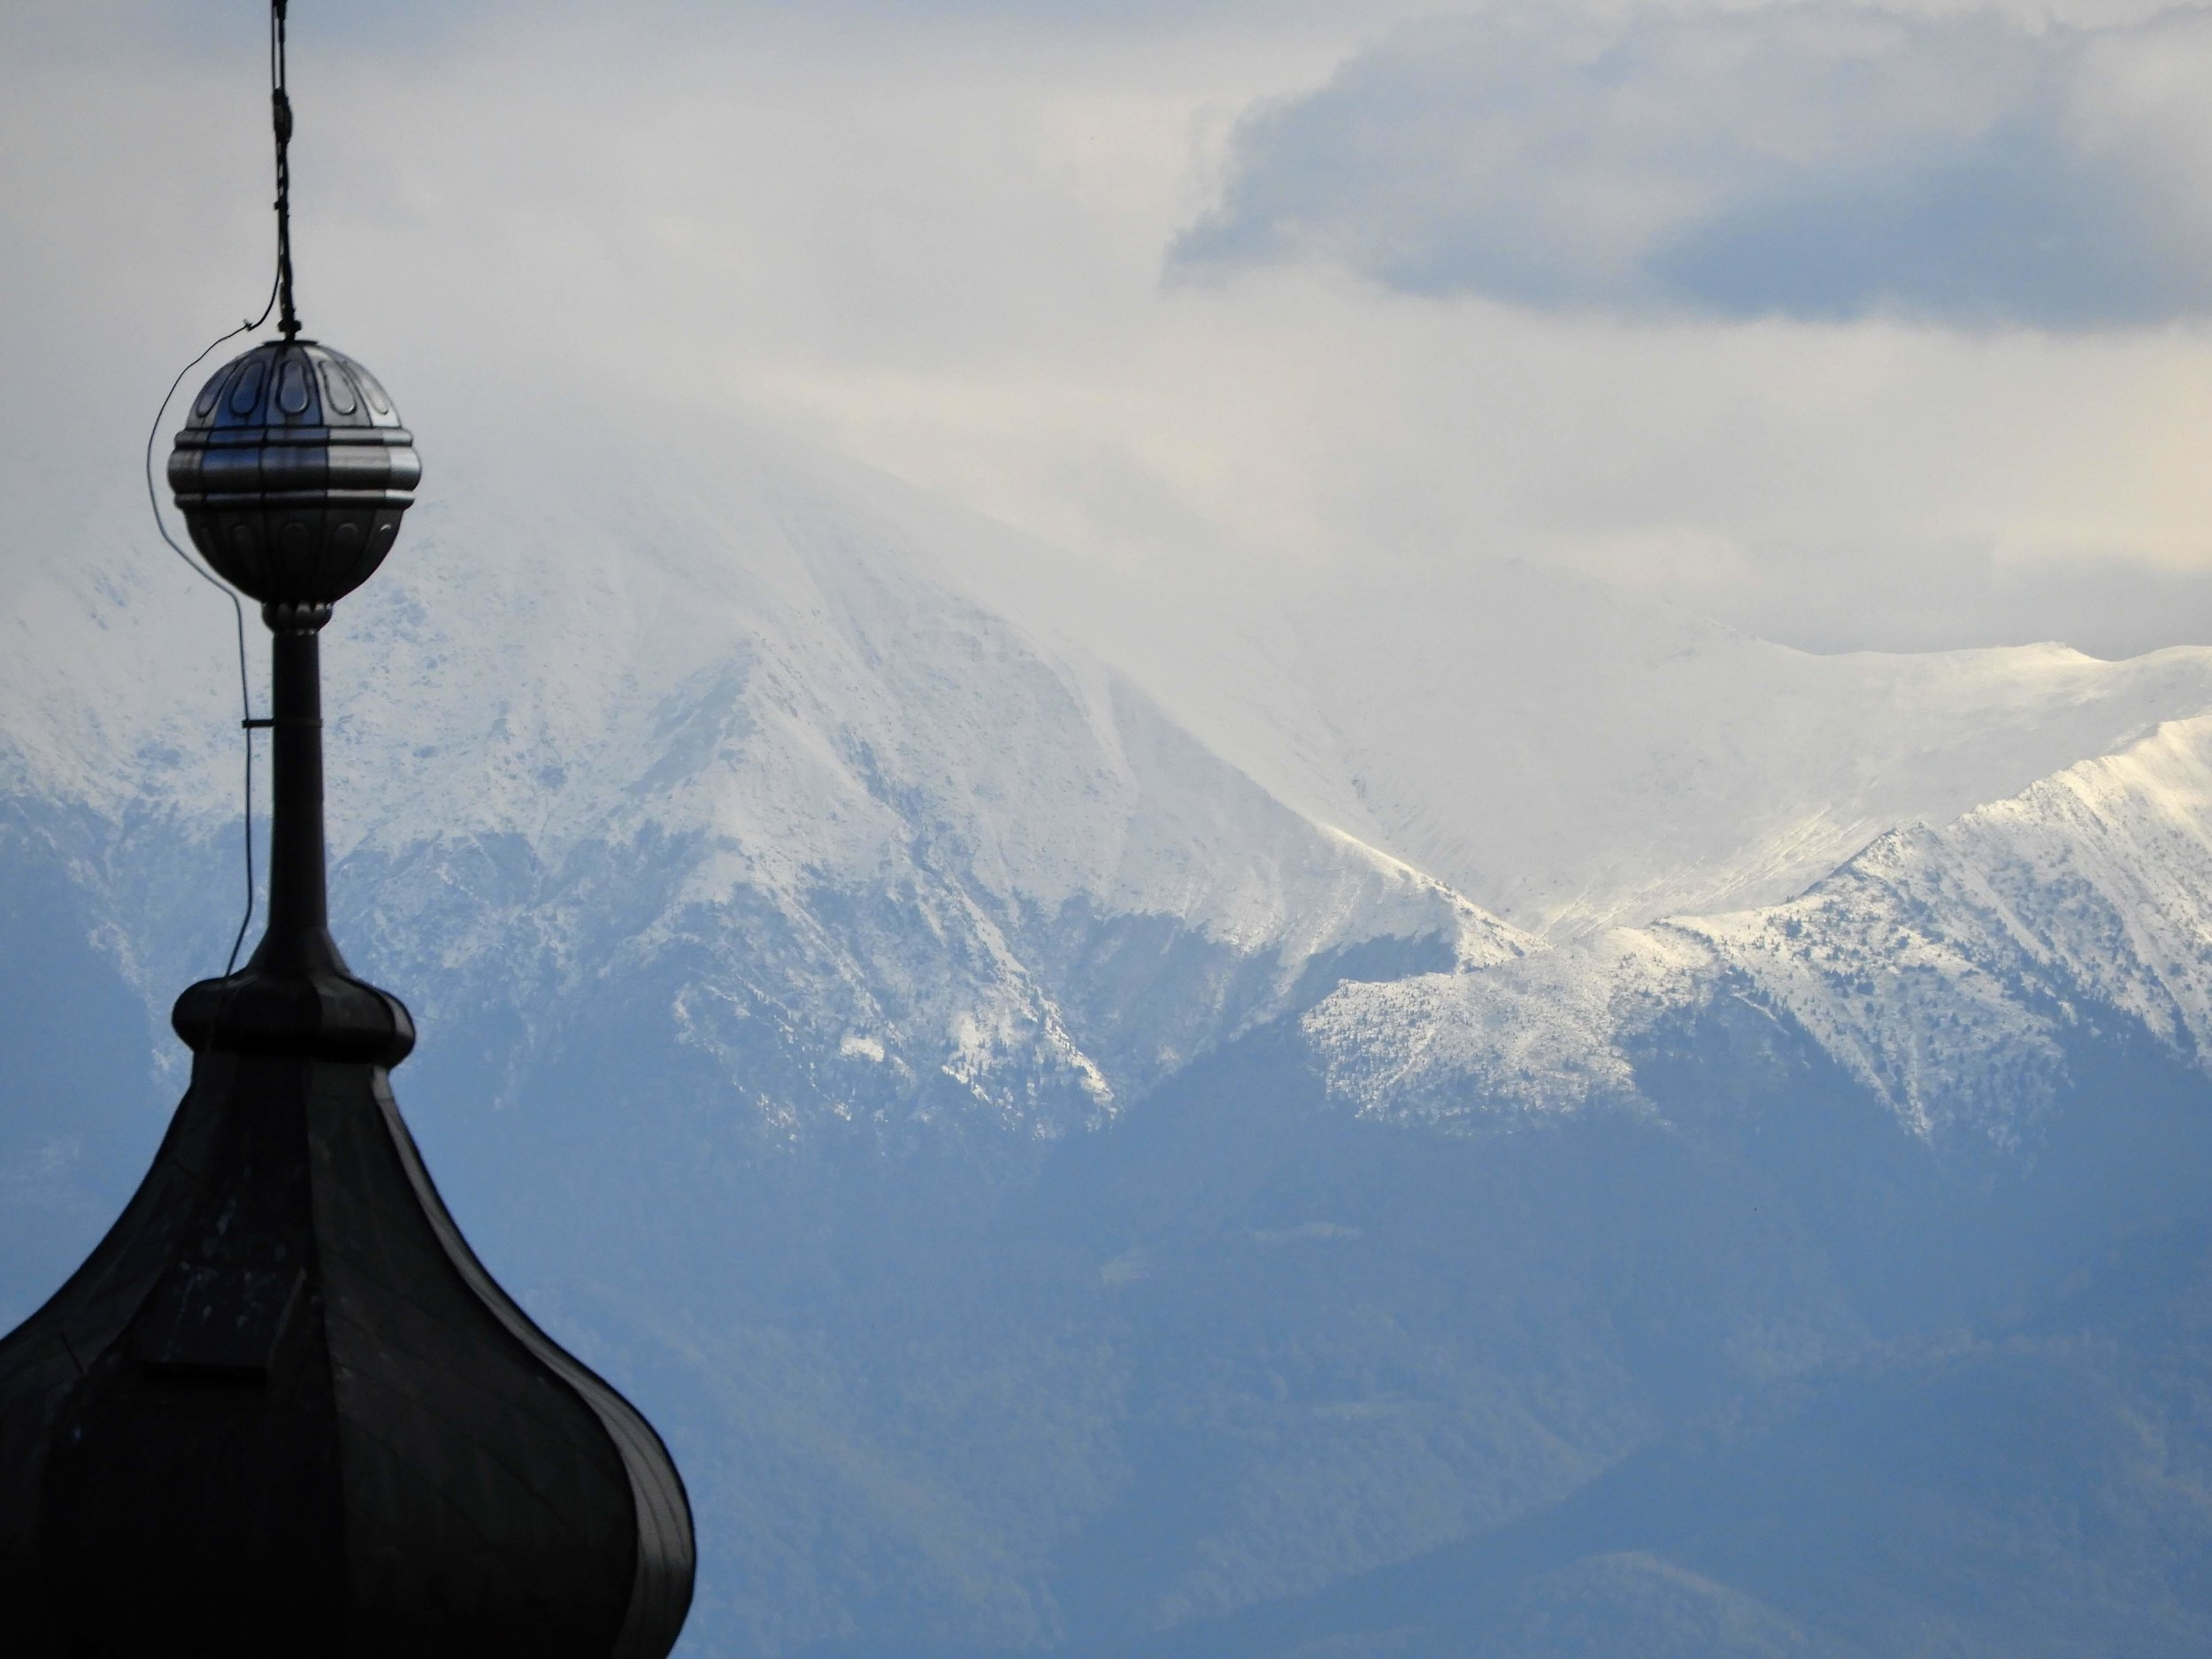 romania-sibiu-church-steeple-snow-mountains-autumn.JPG